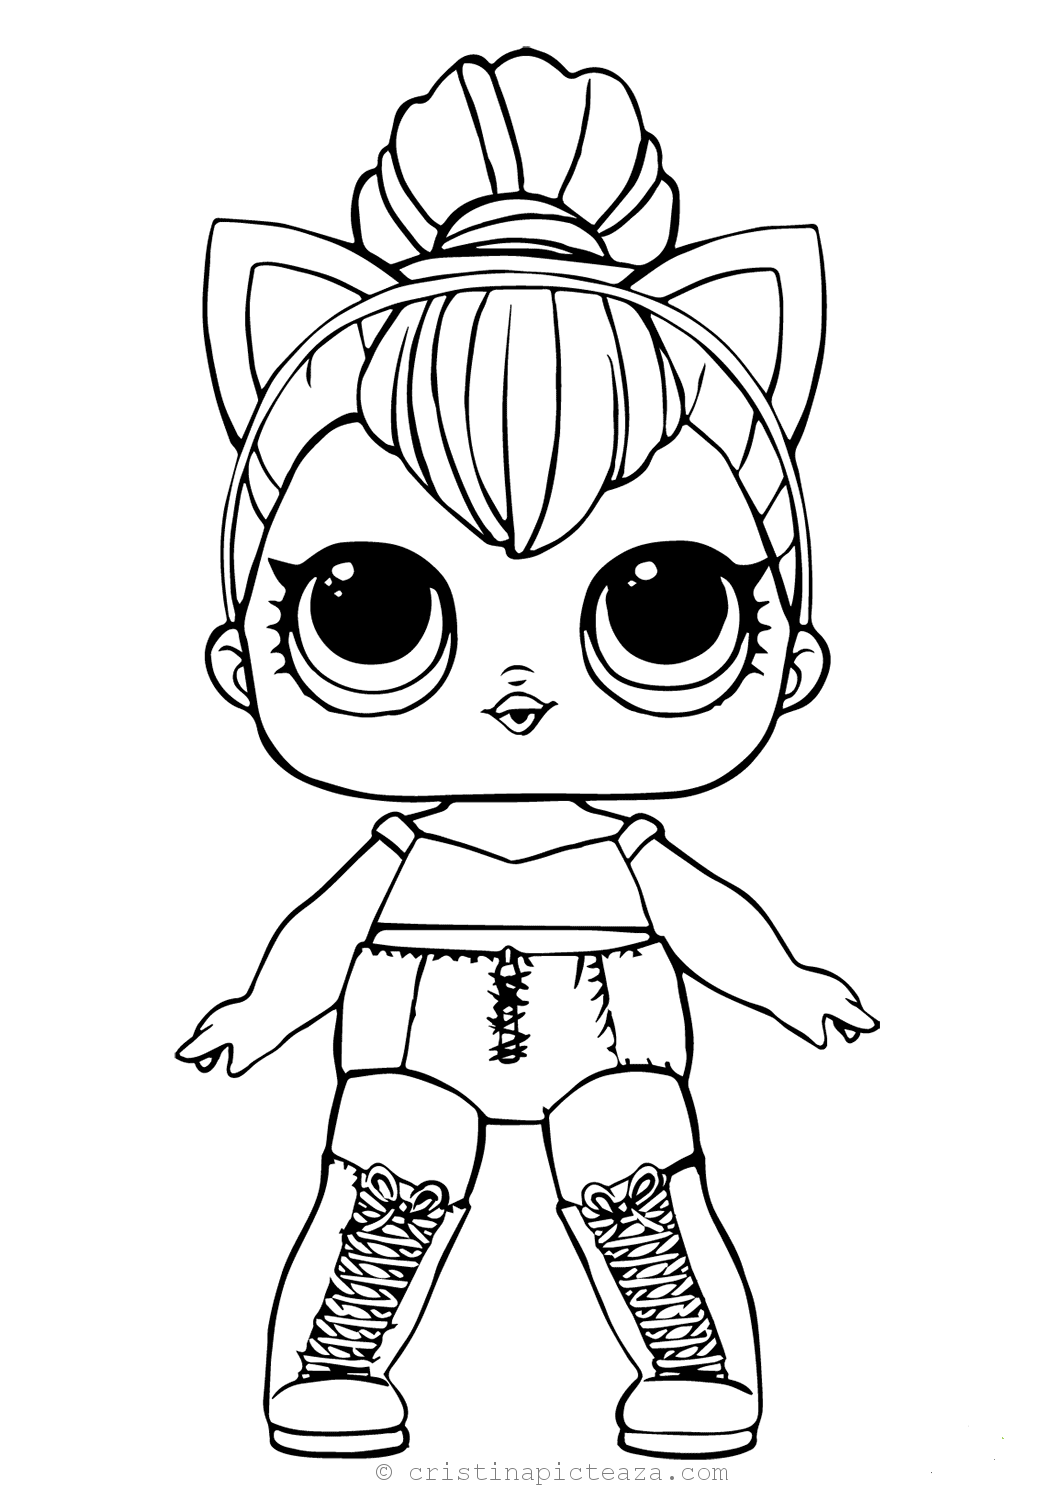 doll colouring pages doll coloring pages getcoloringpagescom doll colouring pages